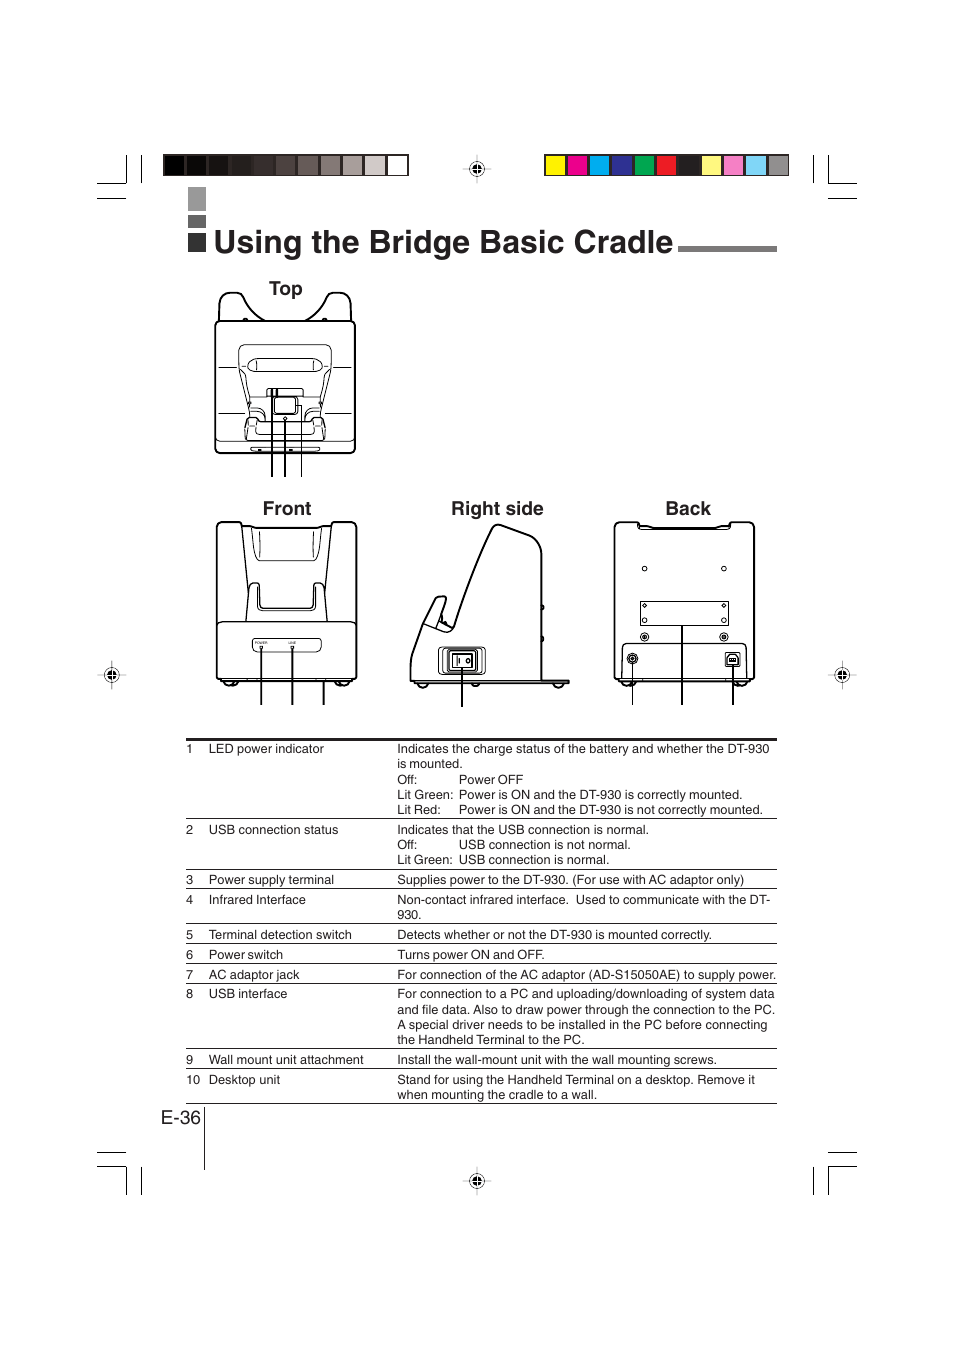 Using the bridge basic cradle, E-36, Top front right side